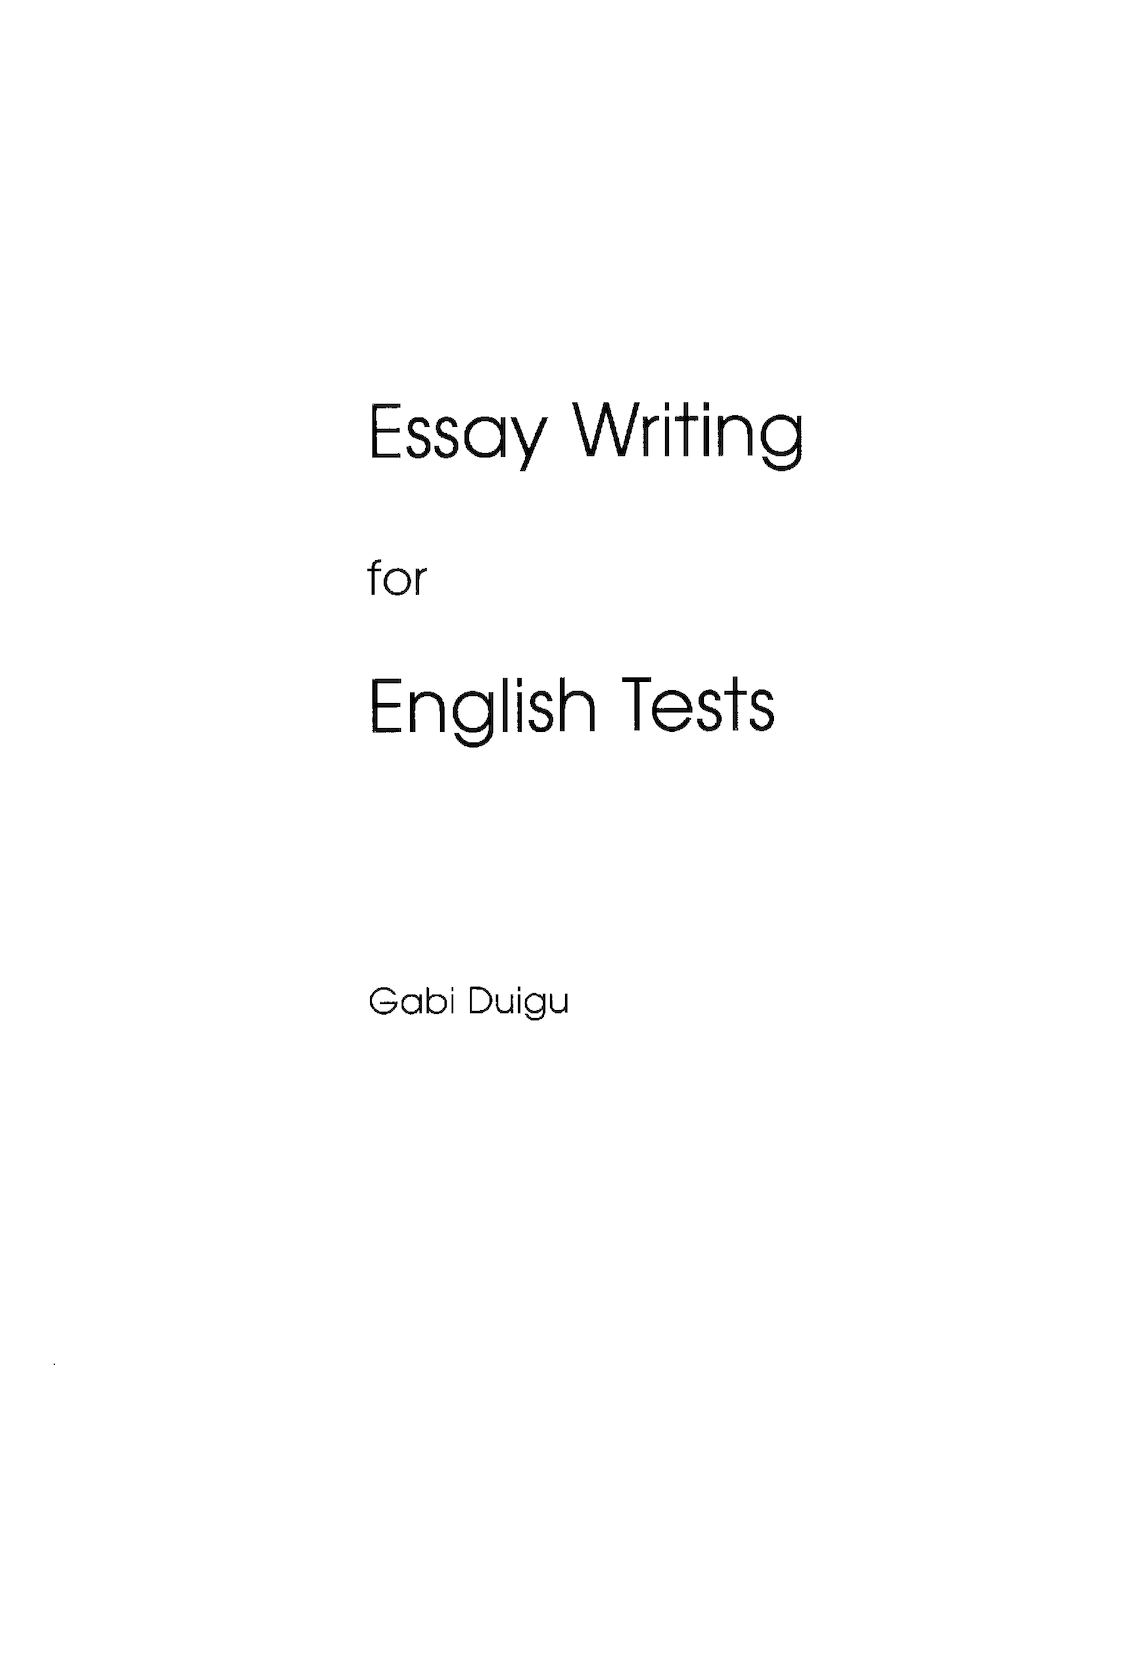 essay writing for english tests author gabi duigu Essay on essay writing tests english gobi duigu книг выложен группой vkcom/create_your_english @ gabi duigu 2002 all rightsreserved revised and.